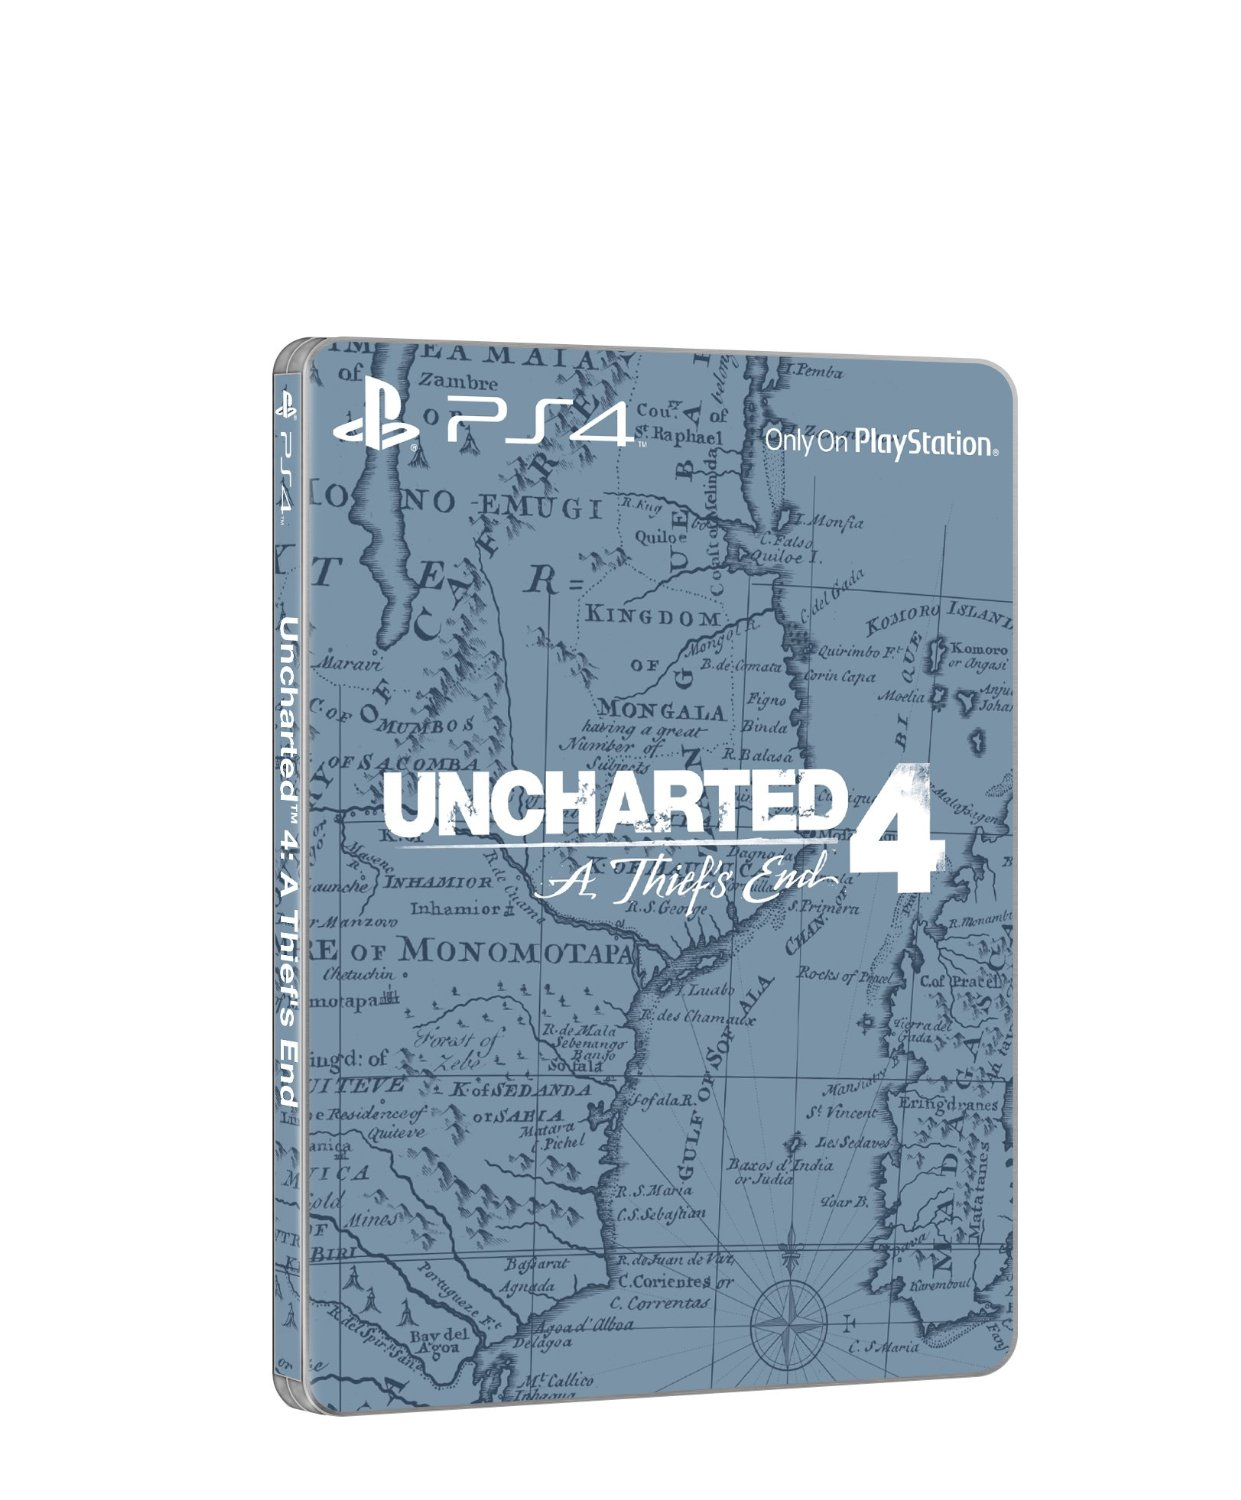 This image was taken from the game's German Amazon page. Could this be a new edition of Uncharted 4?